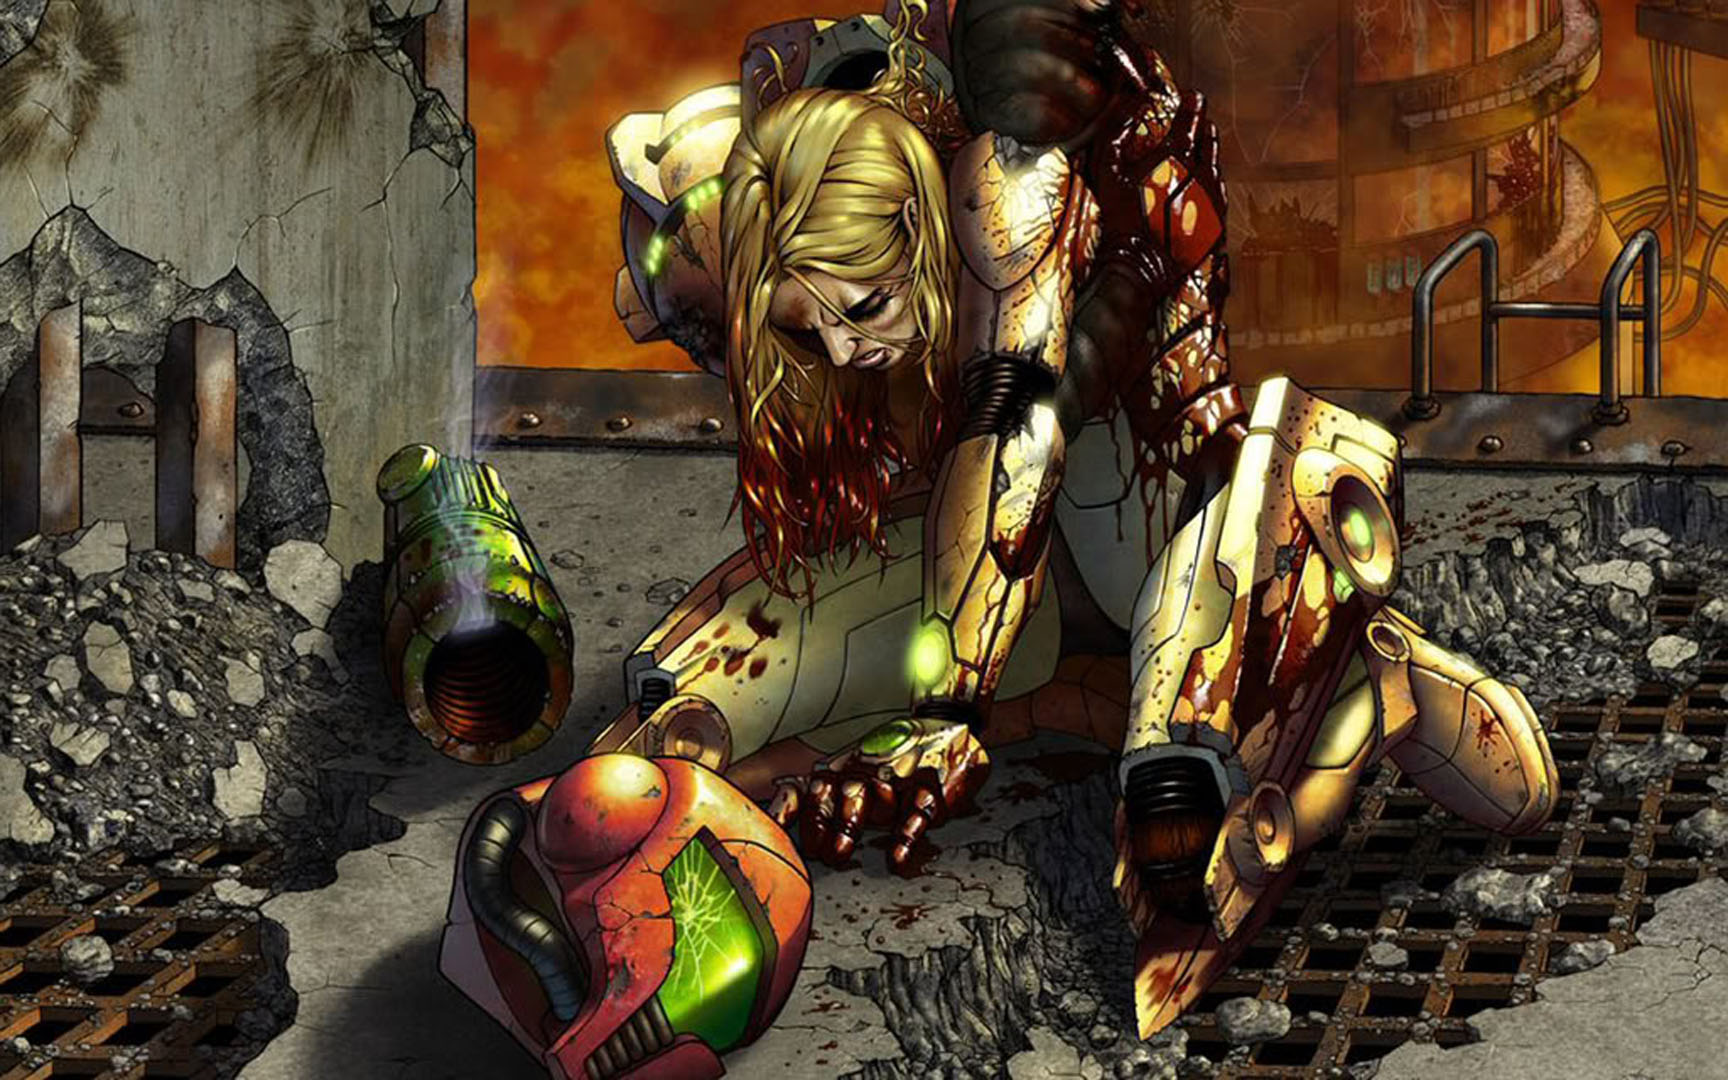 Wounded Samus